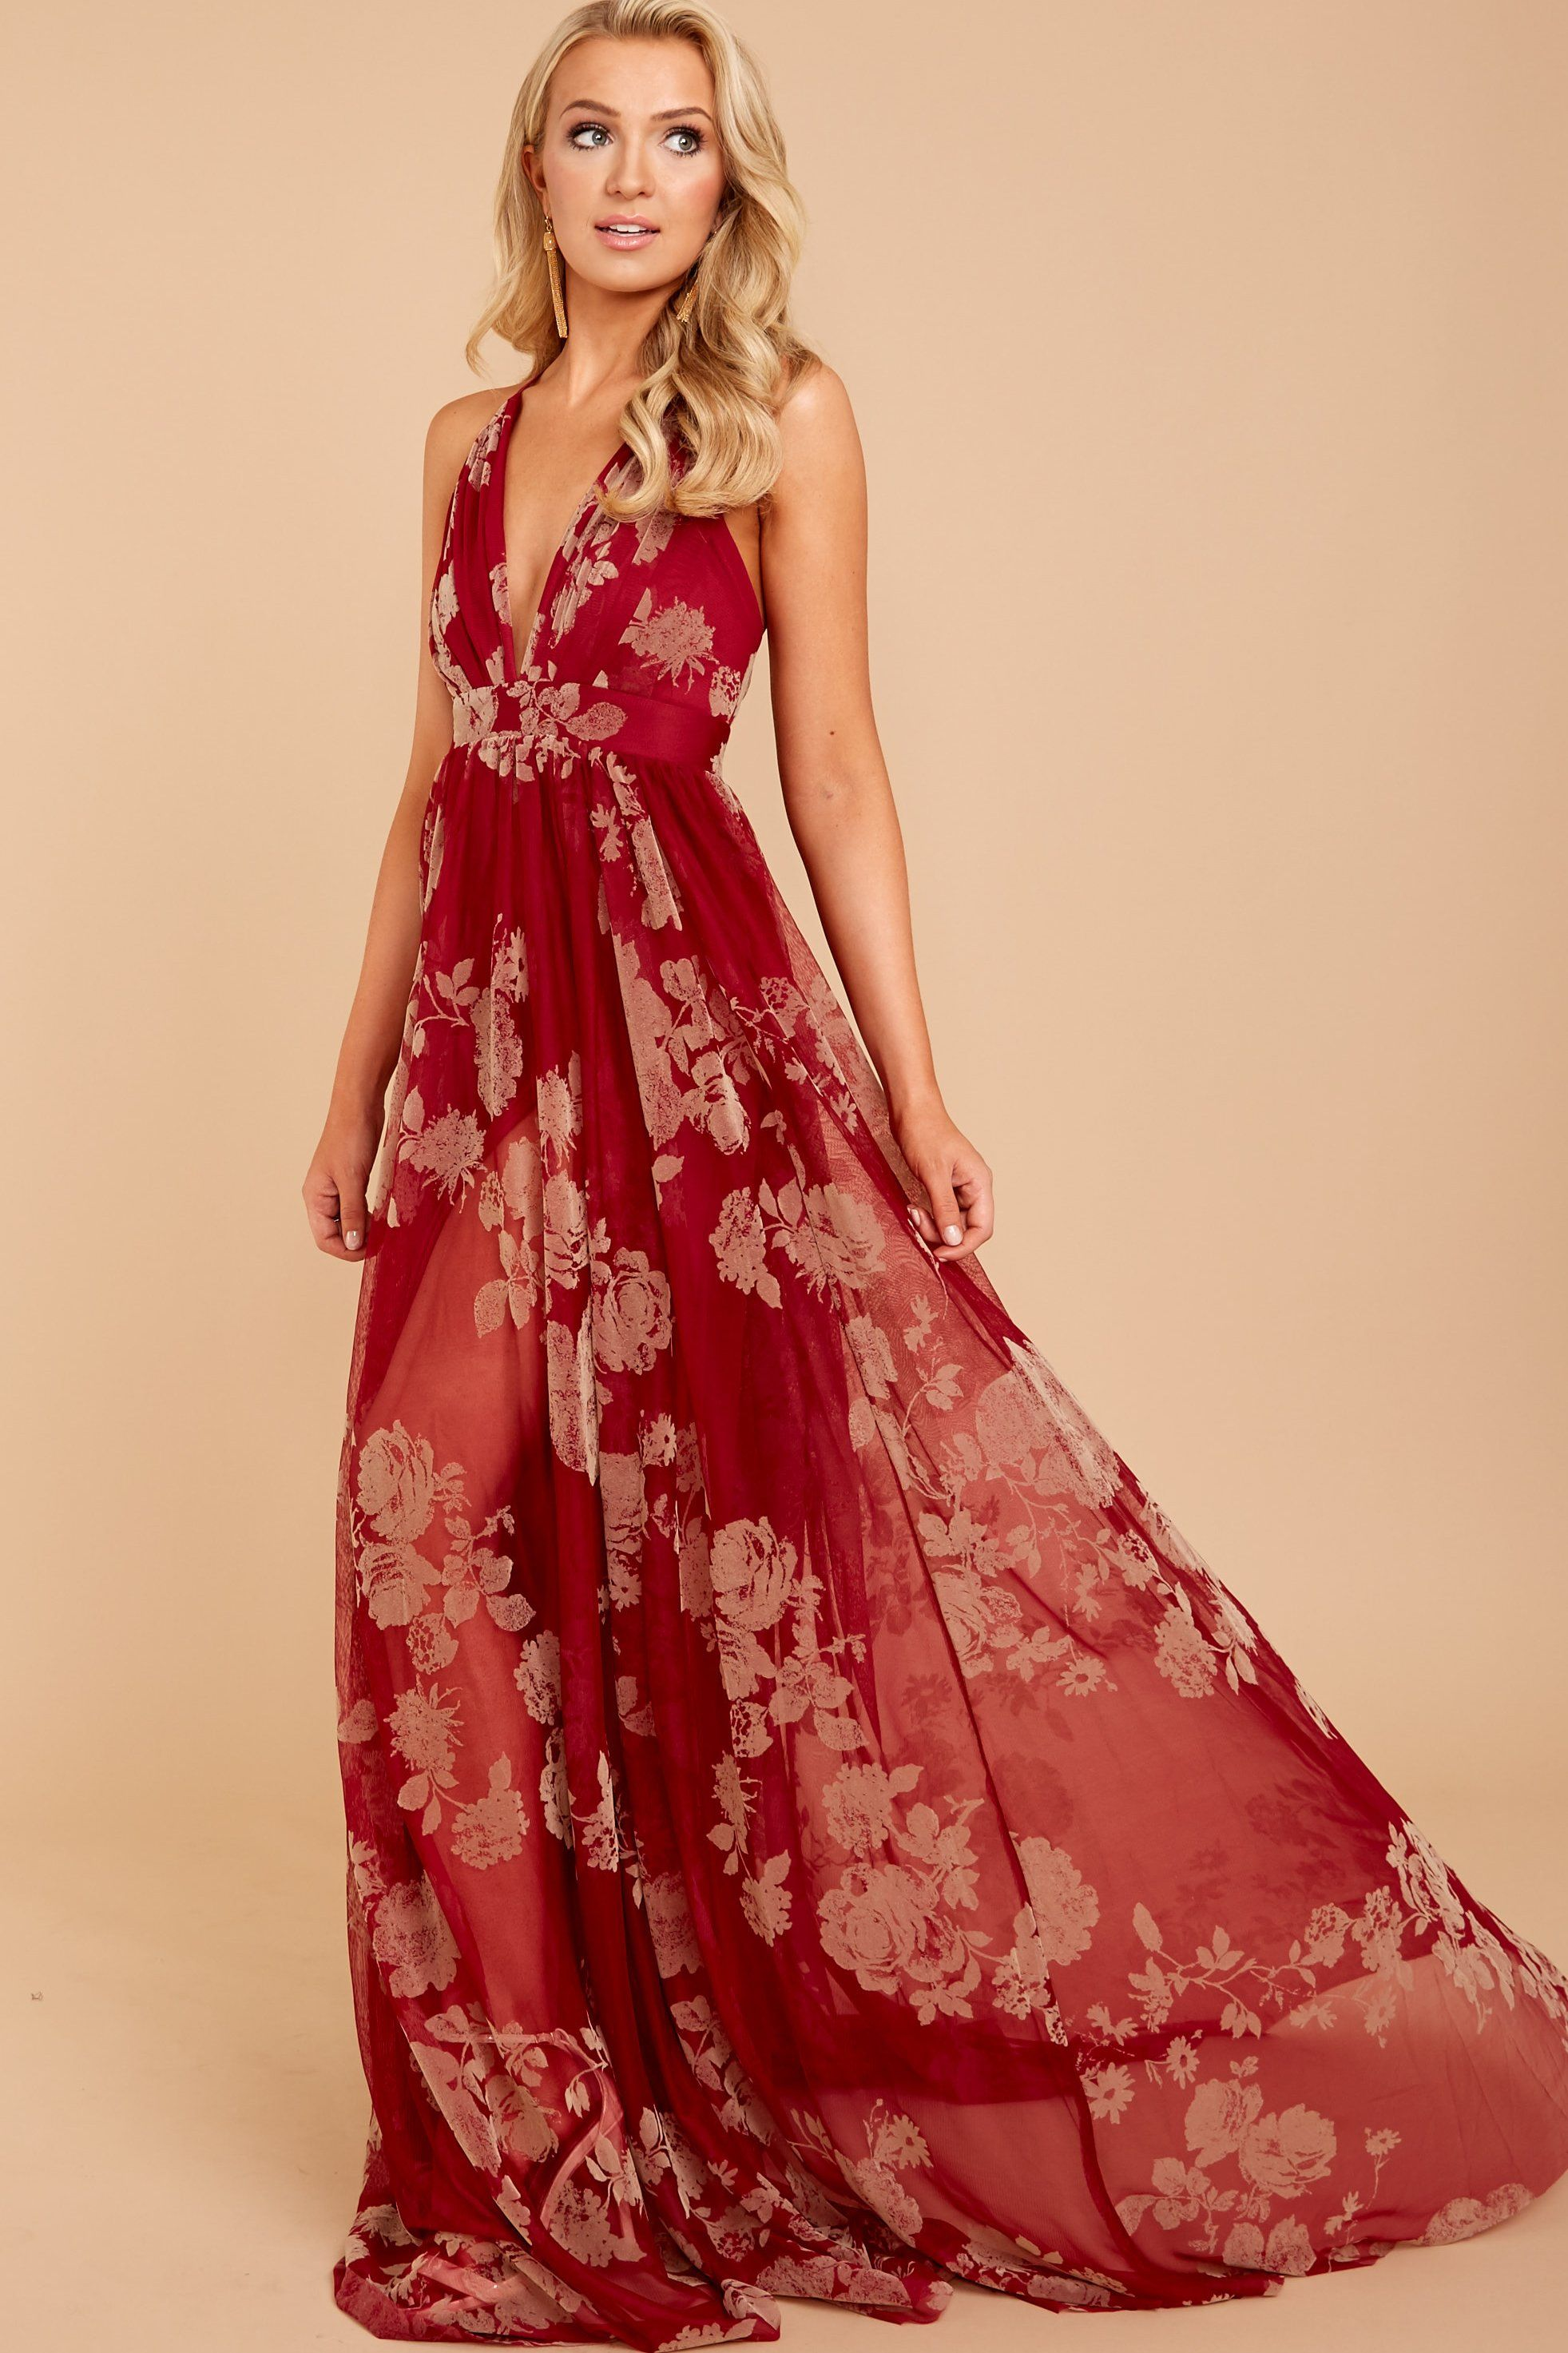 5172acfeddcf Elegant Red Maxi Dress - Gorgeous Wine Maxi Dress - $66.00 – Red Dress  Boutique